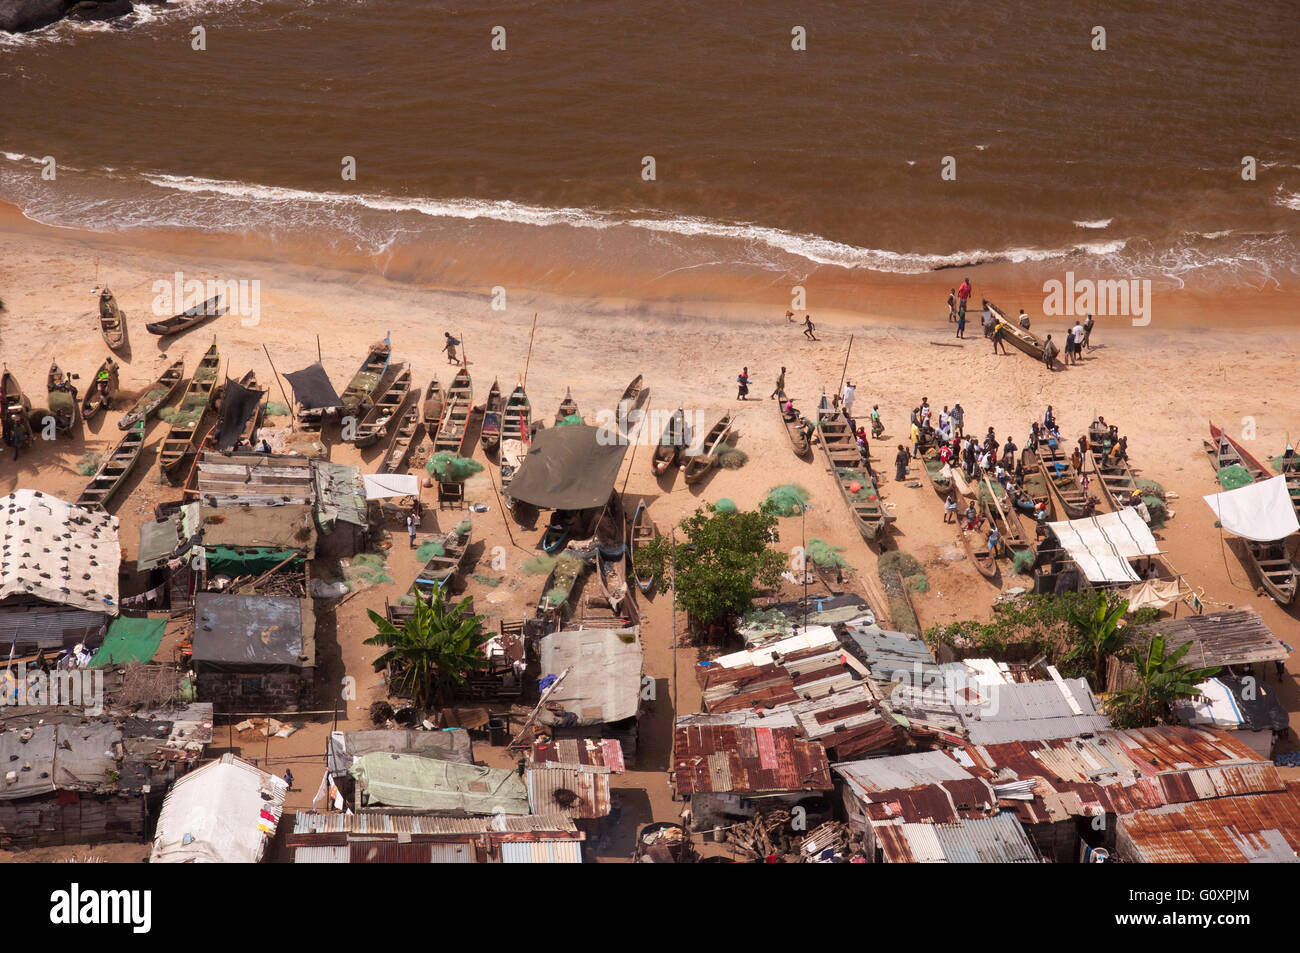 People, fishing nets and canoes make a for very interesting composition of everyday life on a beach west of Monrovia - Stock Image